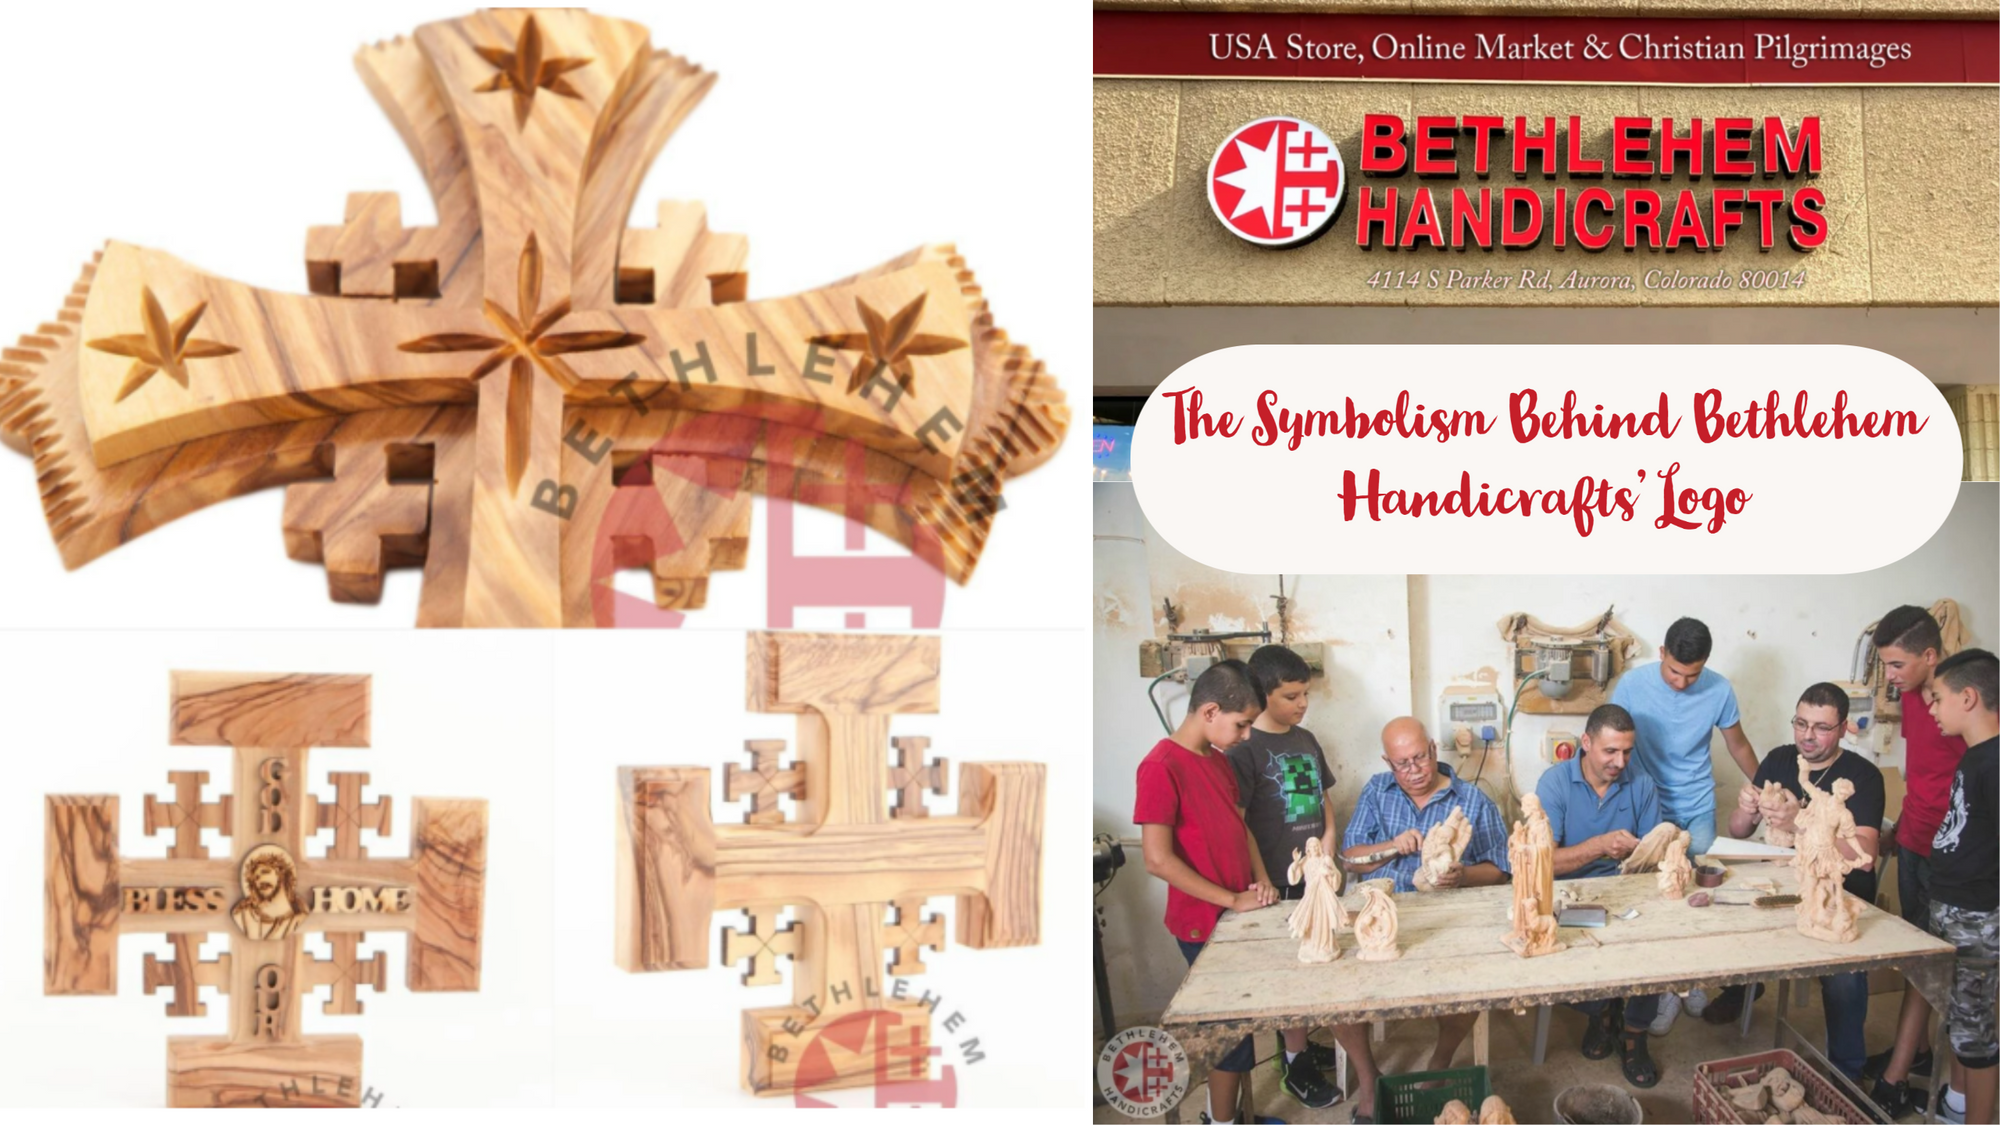 The Symbolism Behind Bethlehem Handicrafts' Logo